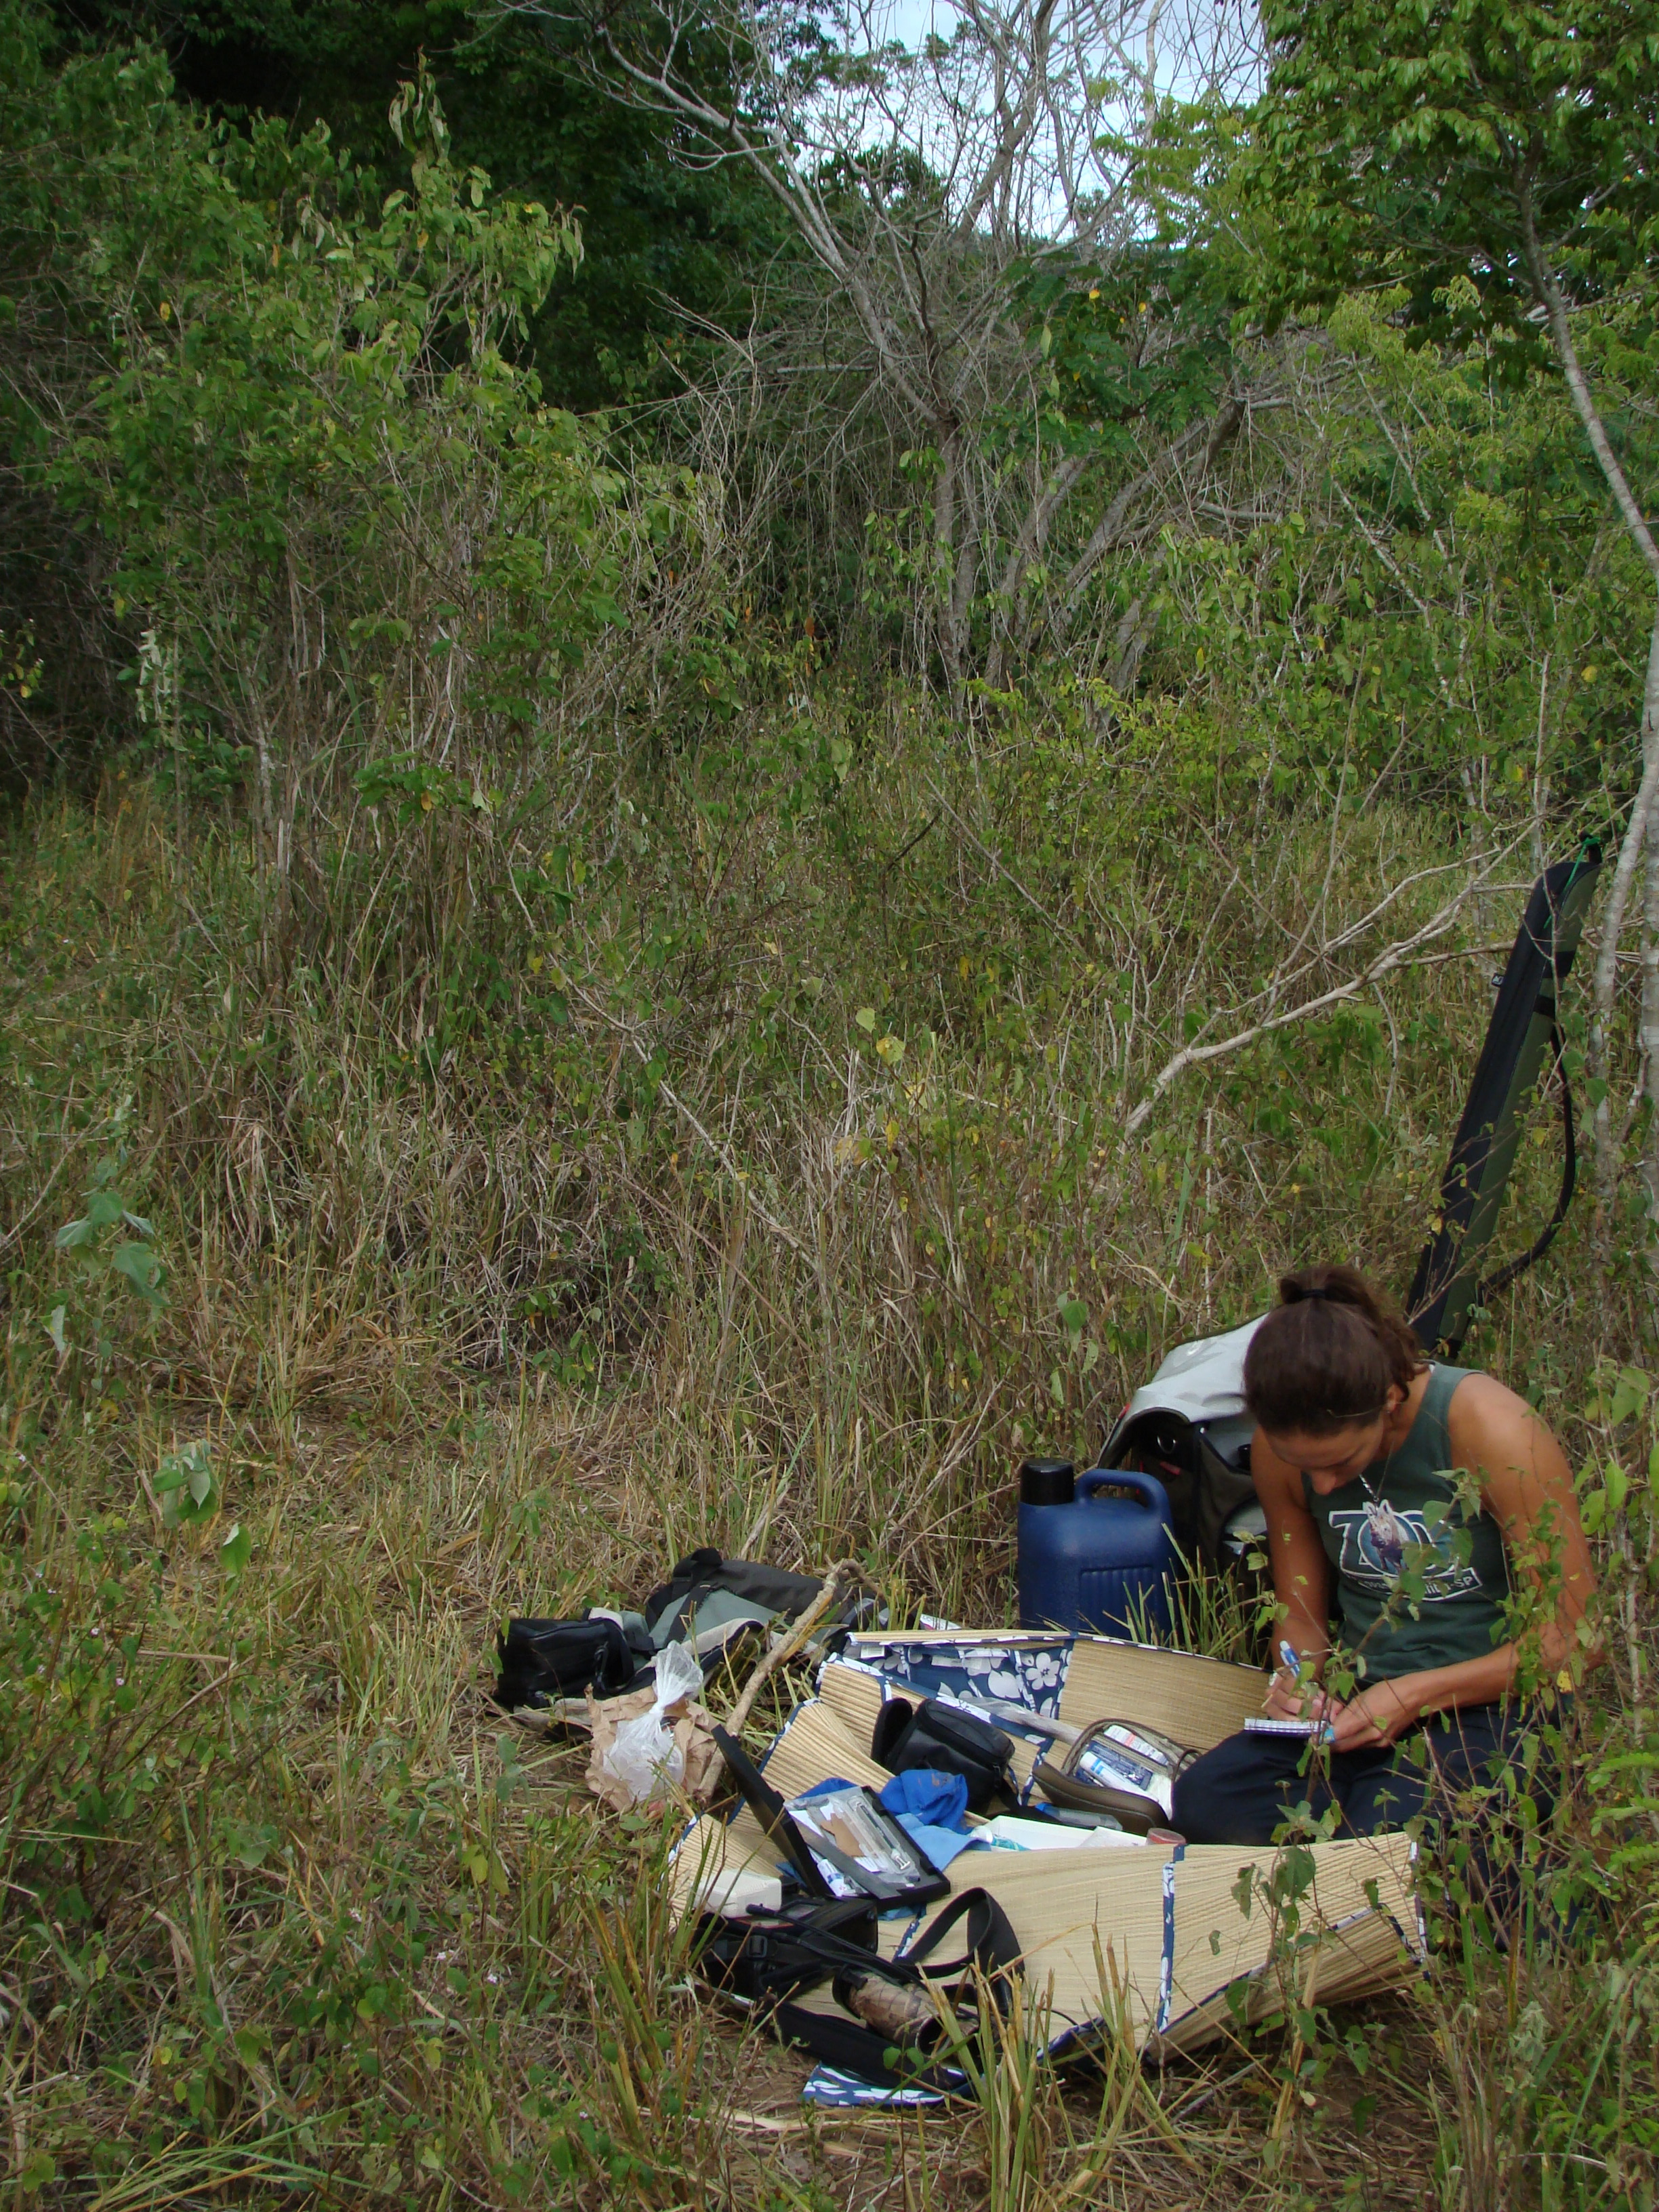 Ferreira doing field work in Bahia: writing down data and preparing to catch, take a blood sample from, weigh, measure, legband, rehydrate a bird. Photo: Fabio Schunck